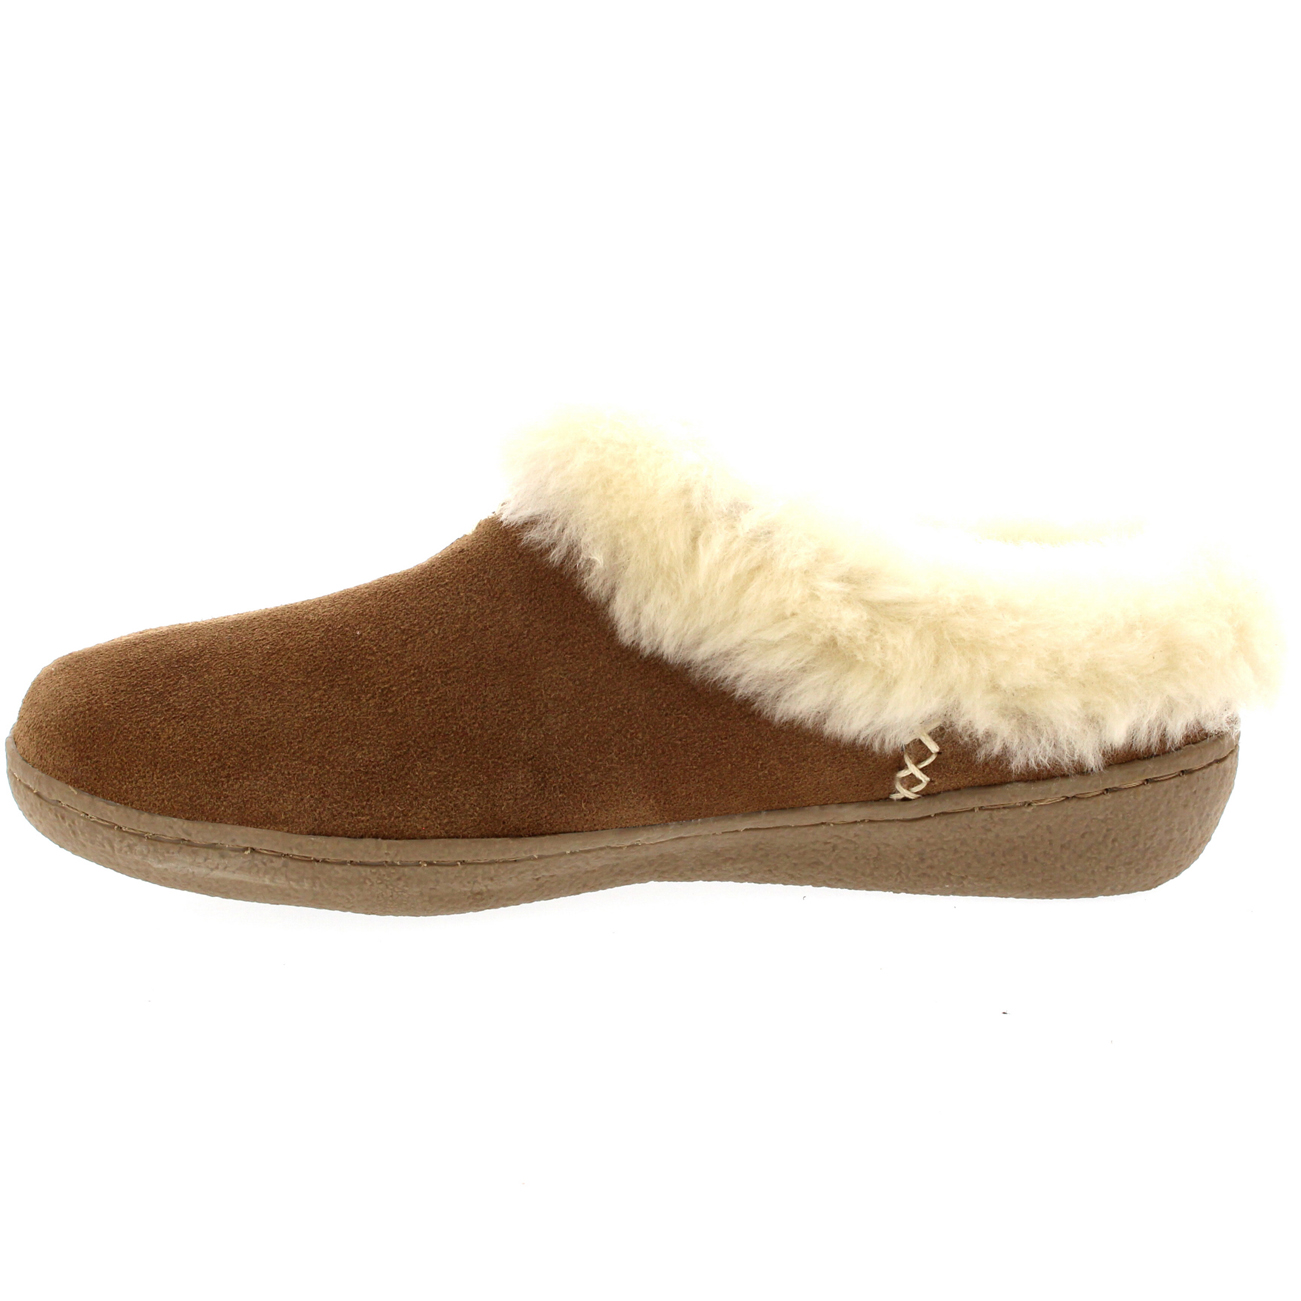 Womens Genuine Suede Australian Sheepskin Fur Lined Warm Mules Slippers UK 3-10 | eBay